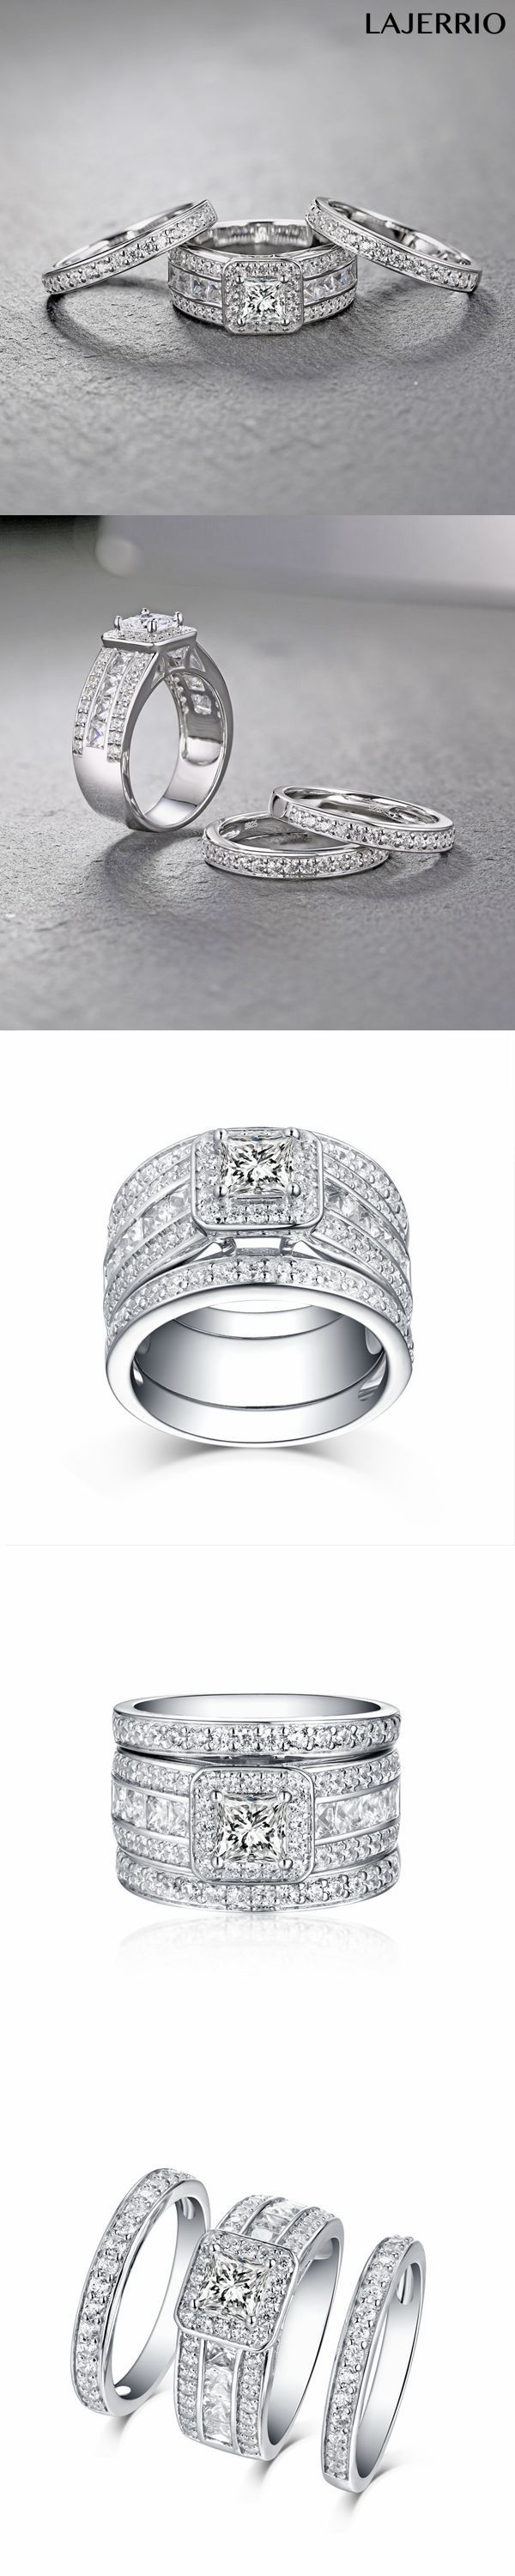 Lajerrio Jewelry Cushion Cut White Sapphire S925 Silver 3 Piece Halo Ring Sets